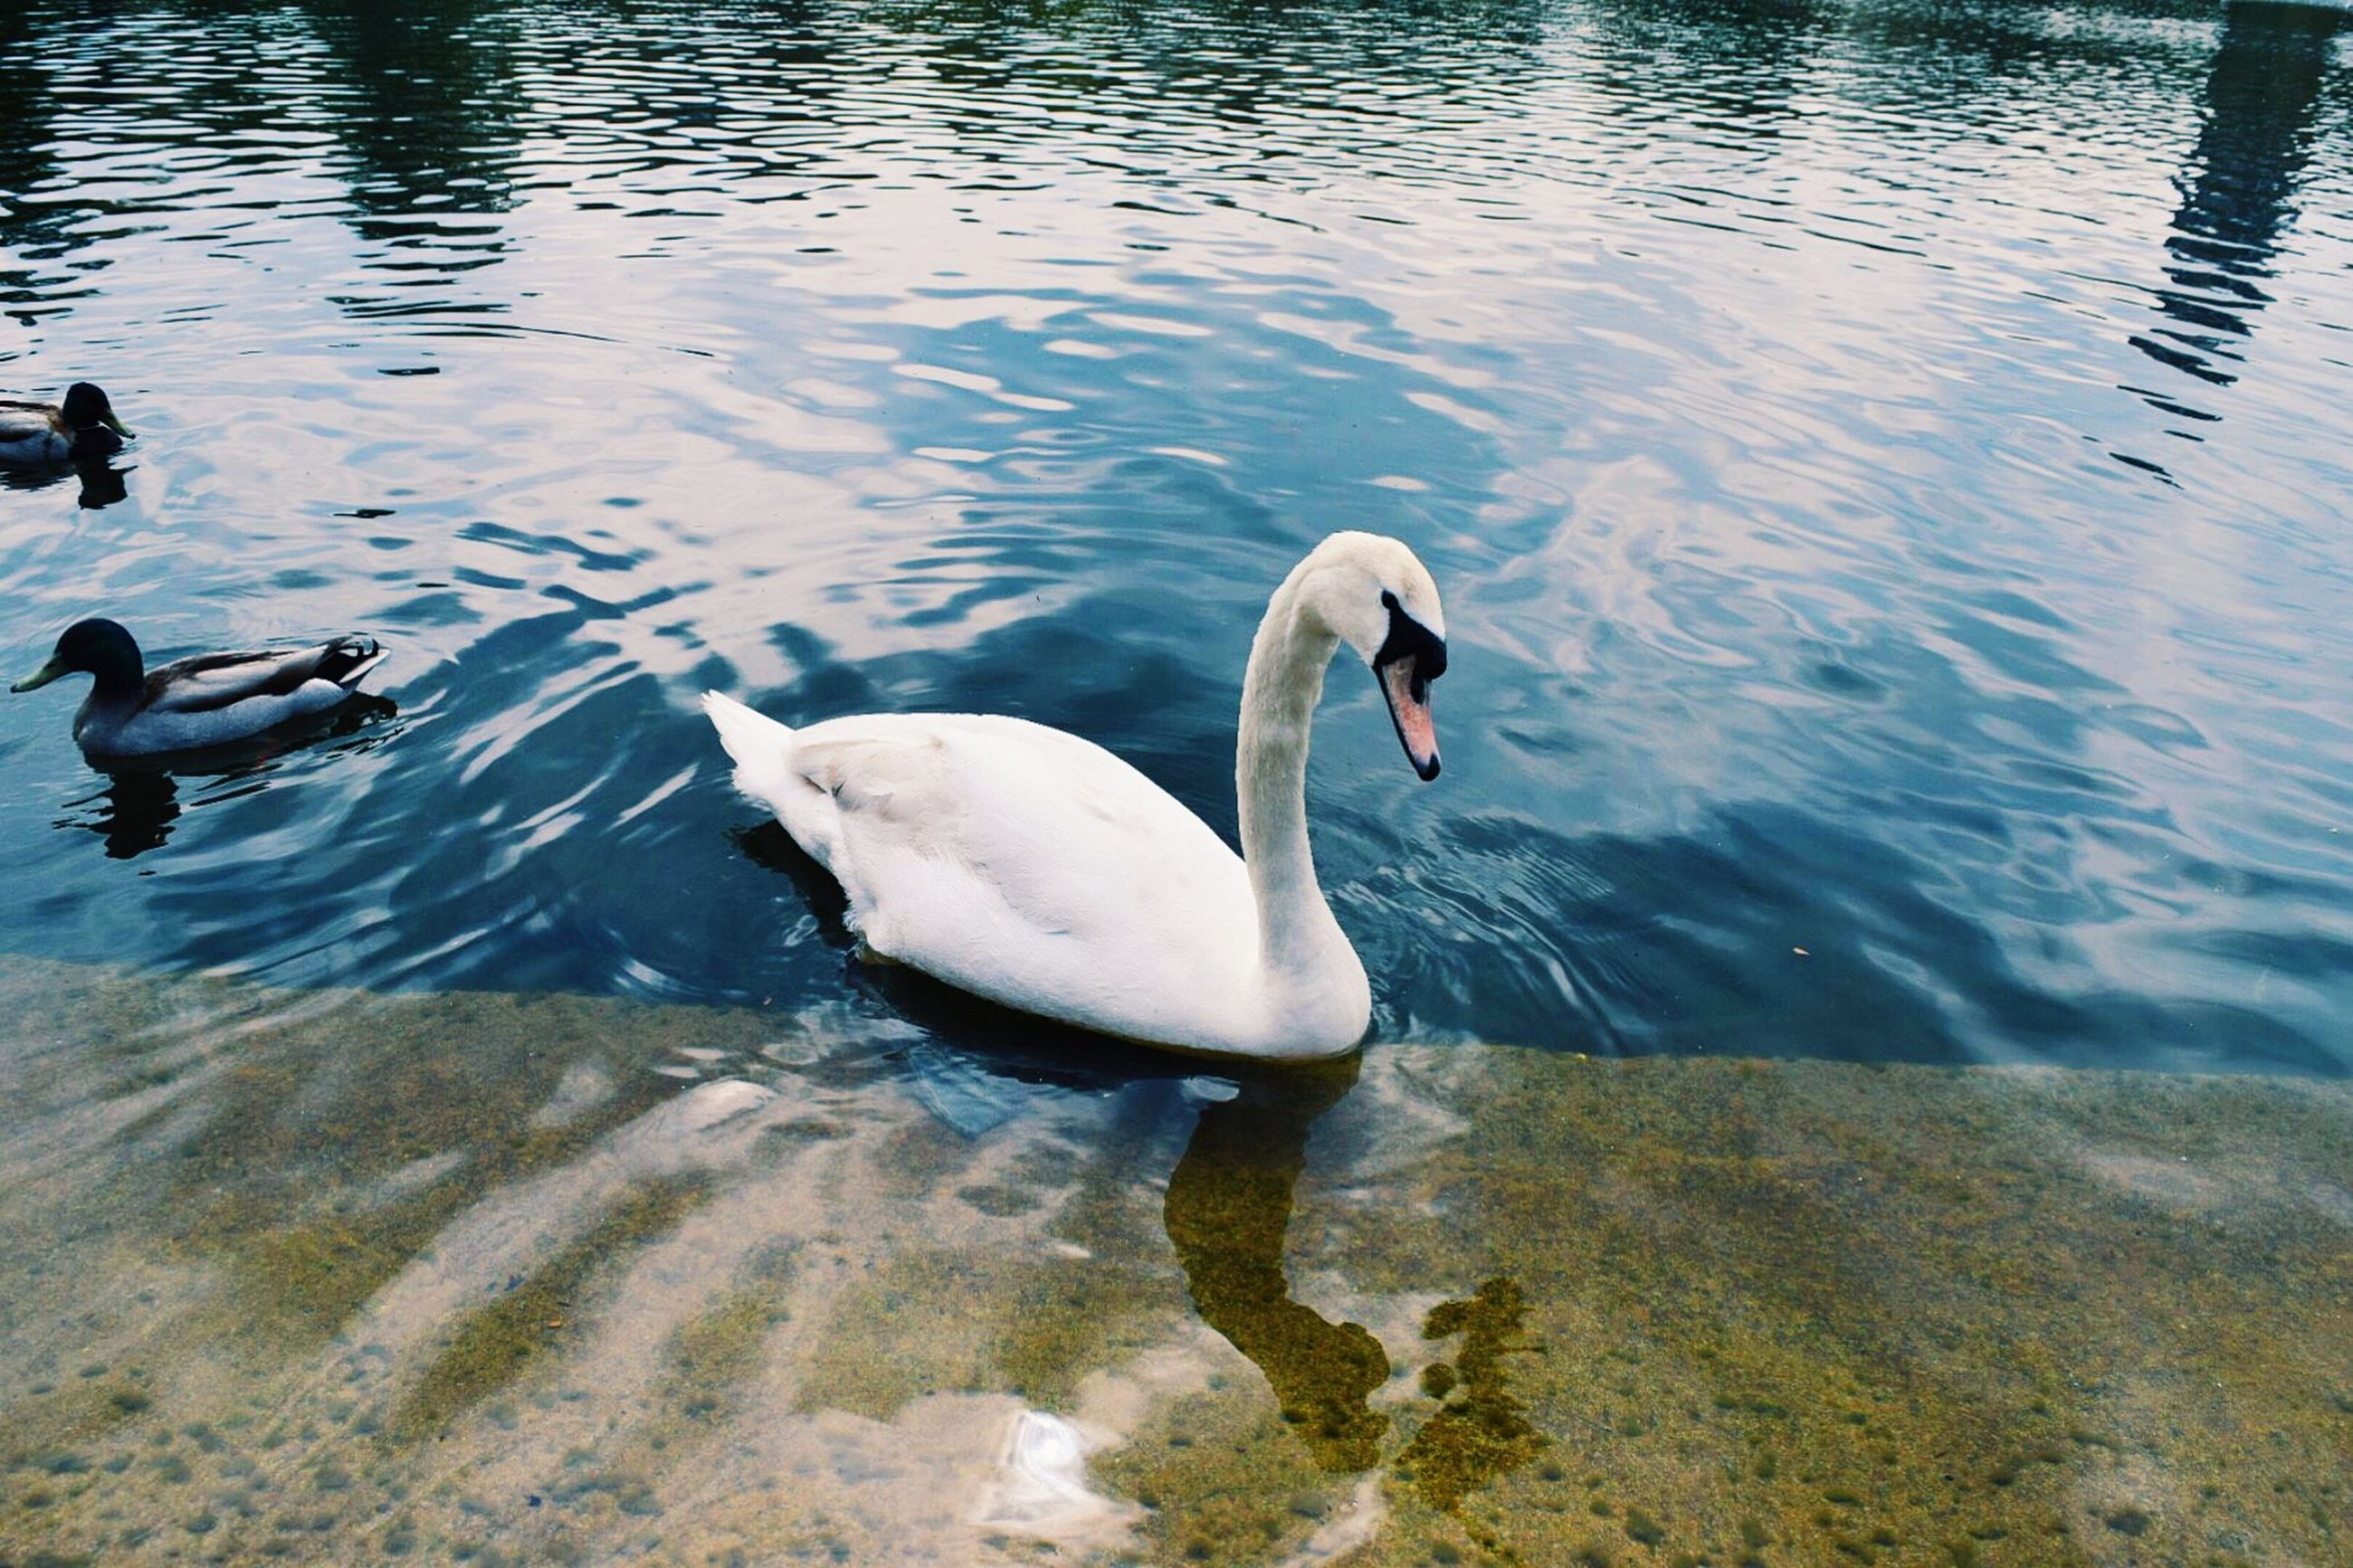 bird, animal themes, water, animals in the wild, wildlife, lake, swimming, swan, water bird, waterfront, rippled, reflection, duck, nature, two animals, high angle view, floating on water, outdoors, no people, togetherness